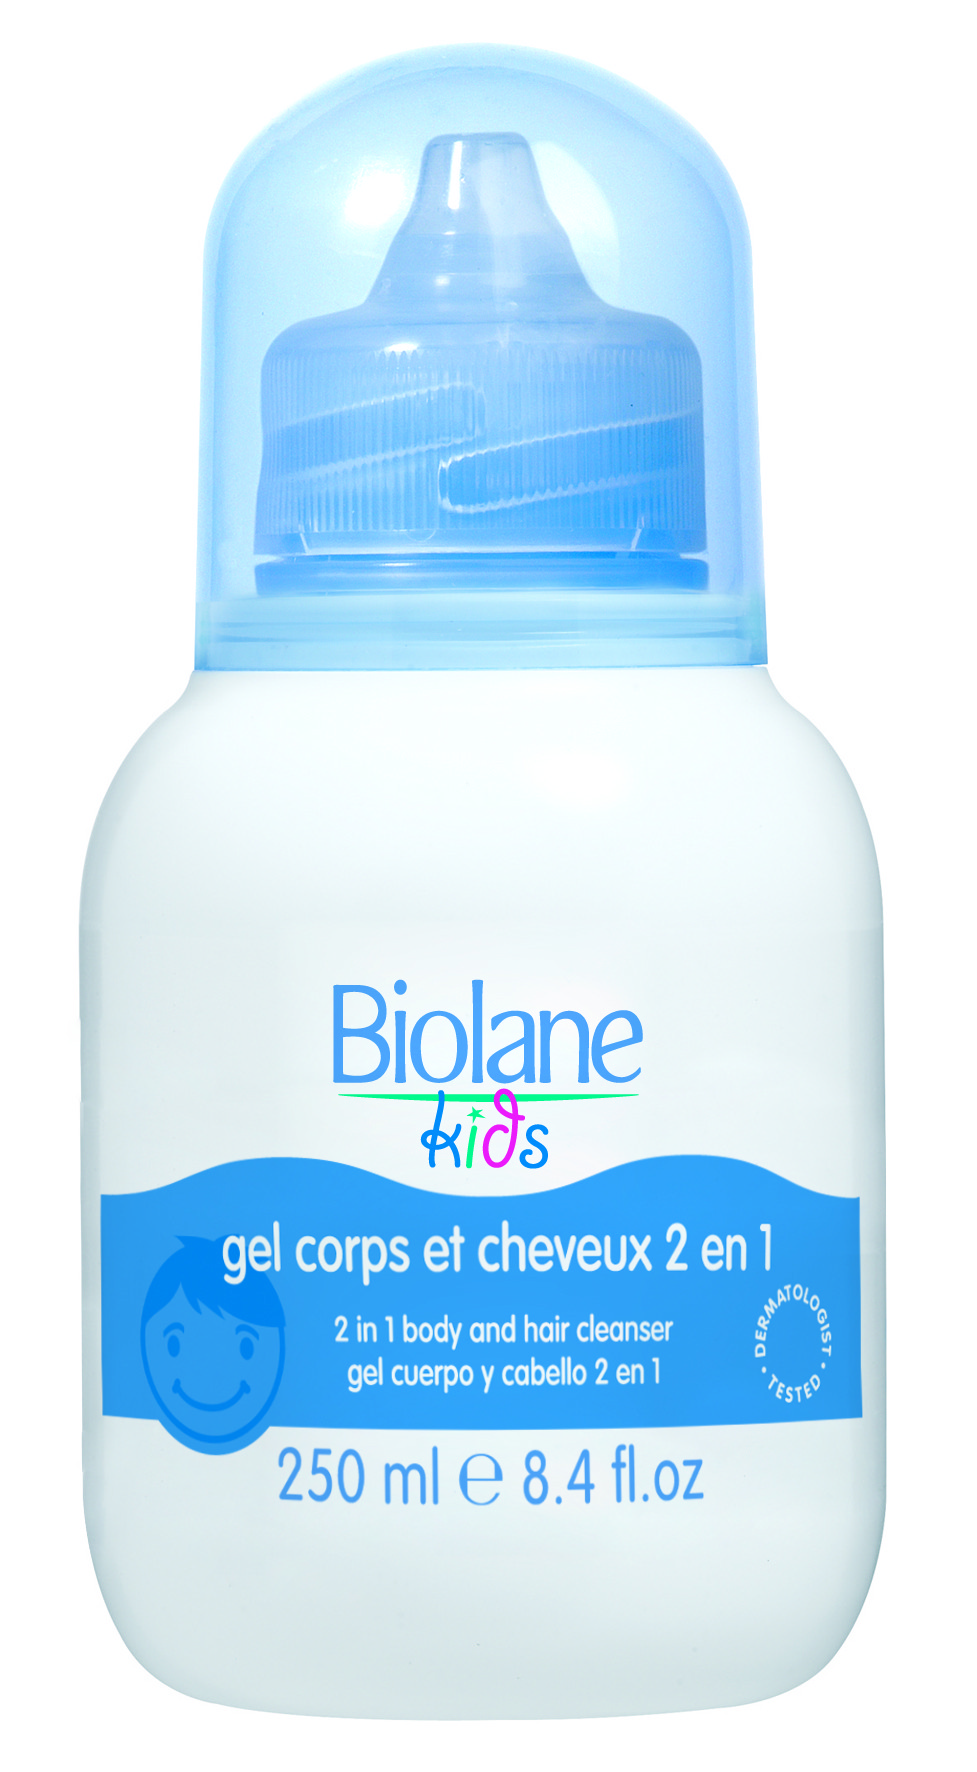 Image 2-in-1 Body and Hair Cleanser Kids